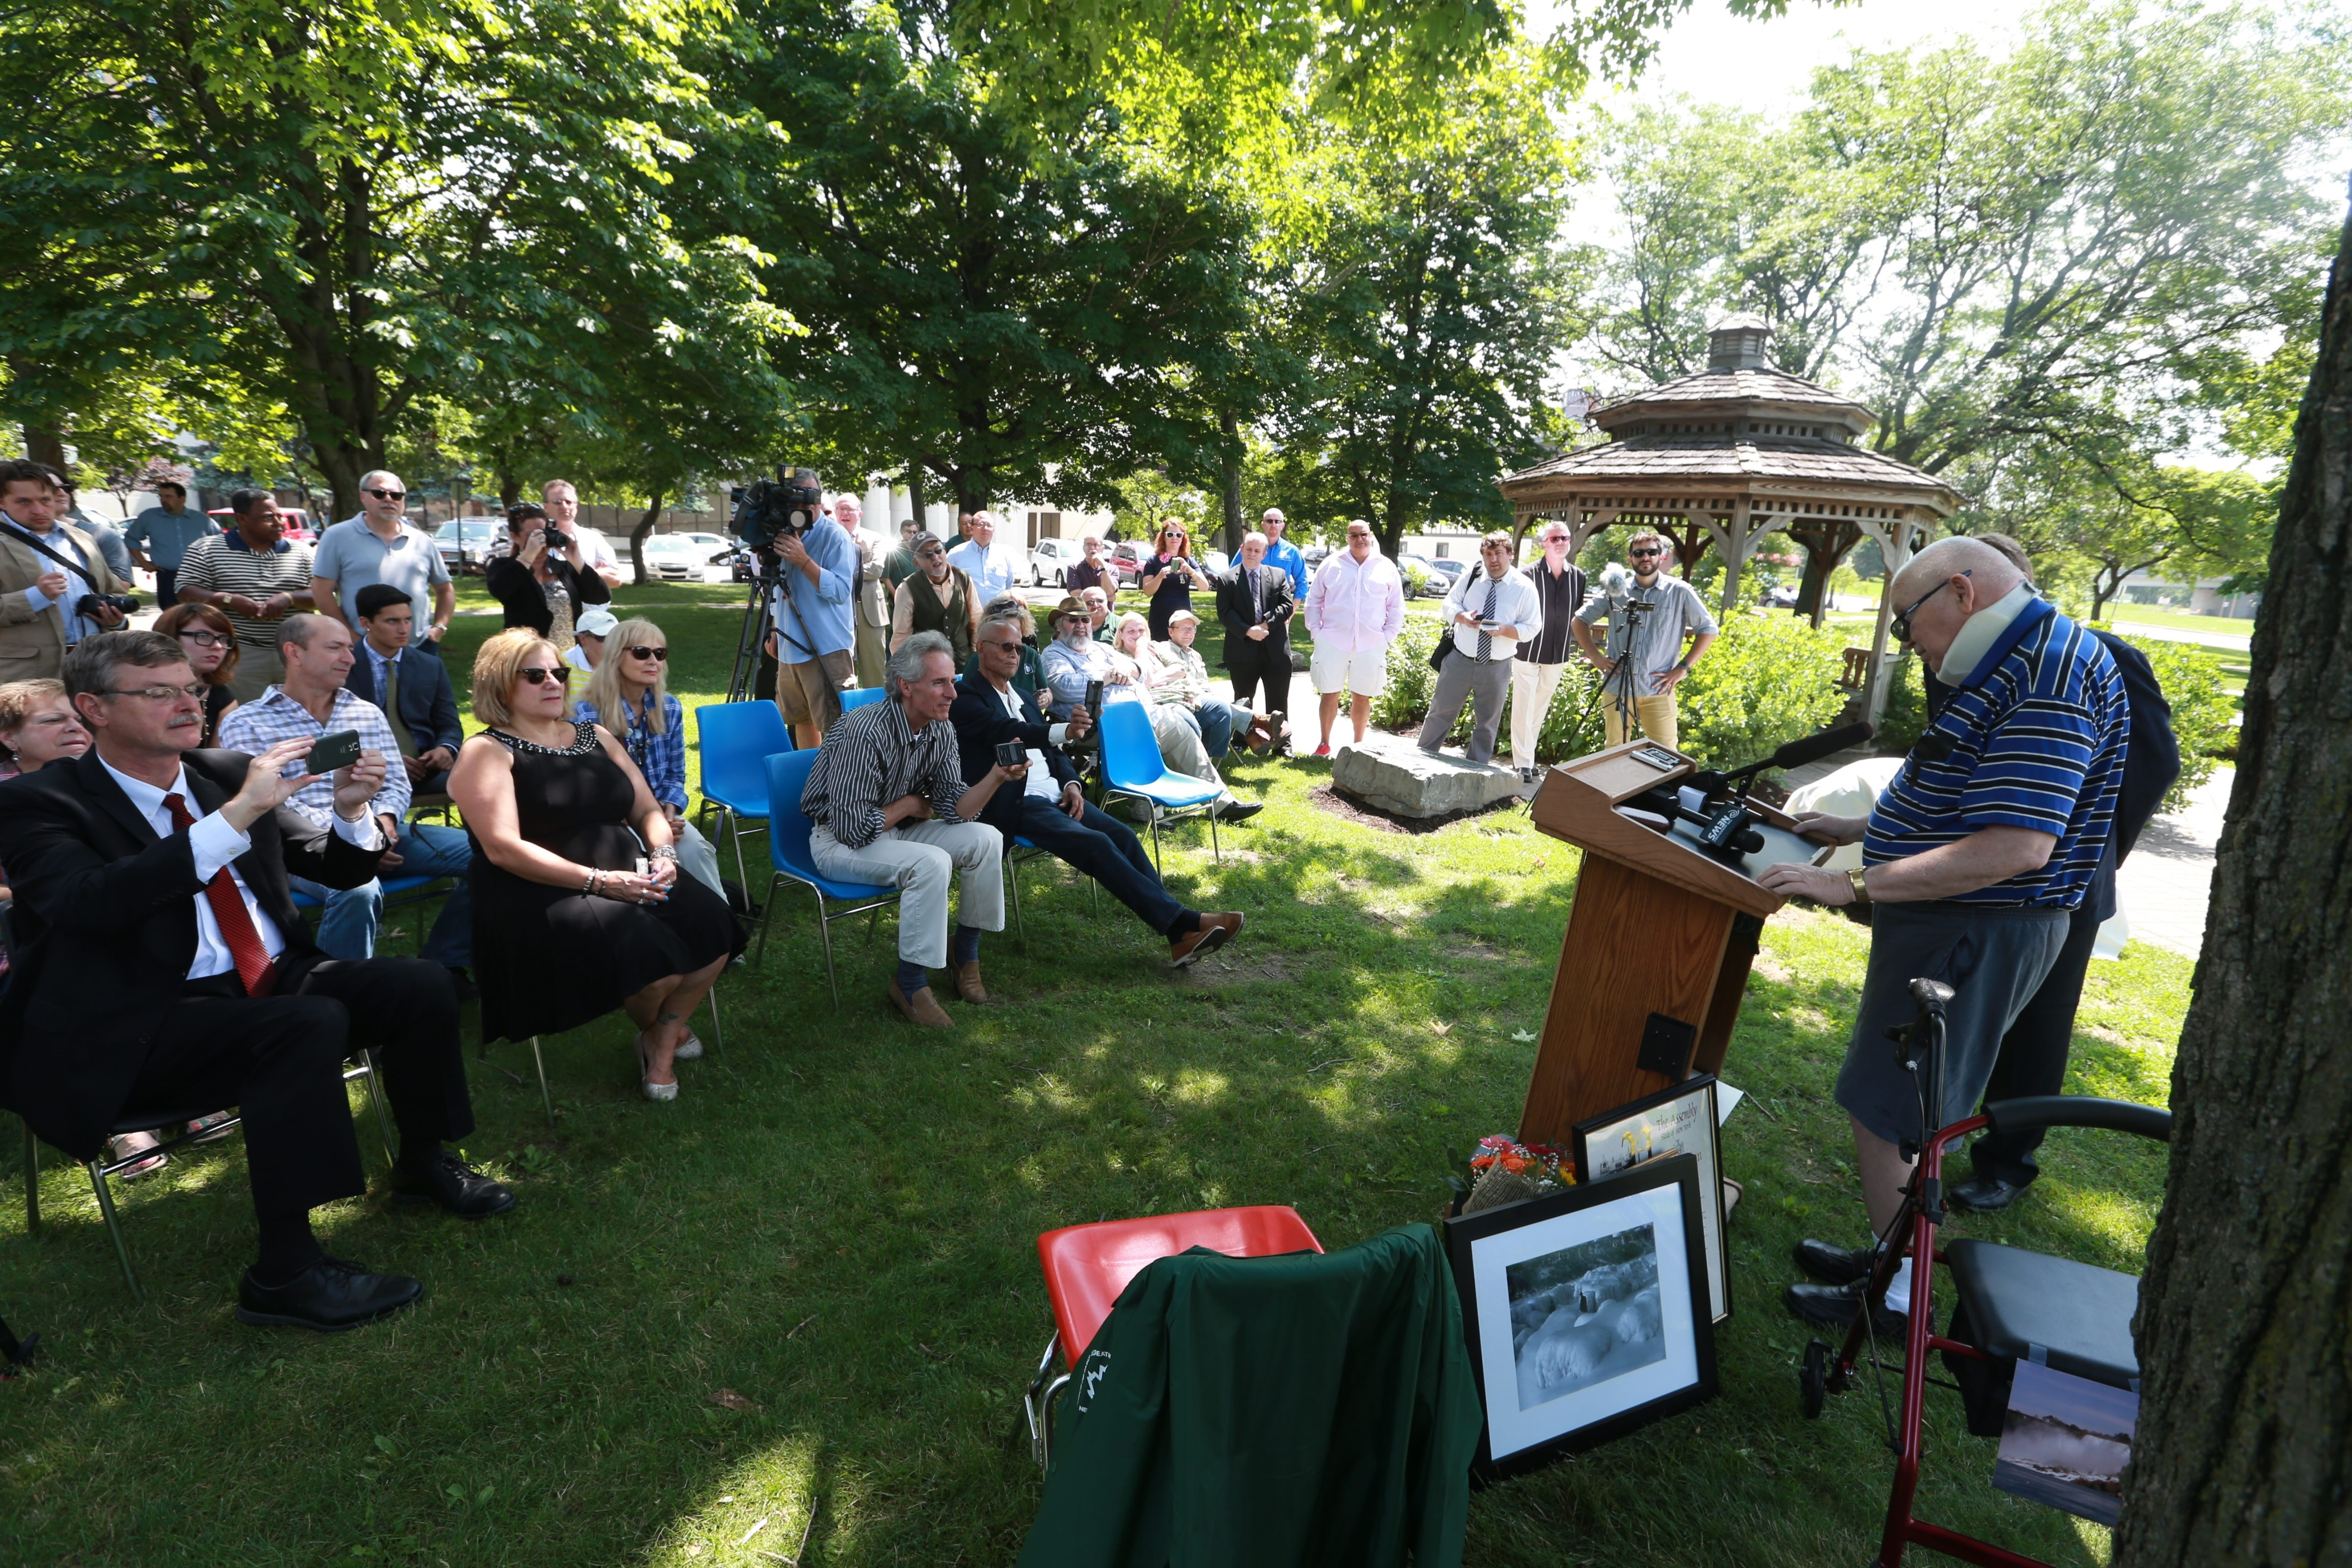 Paul Gromosiak speaks during an event honoring the longtime historian. The surprise event at Heritage Park in Niagara Falls was attended by politicians, friends and family.